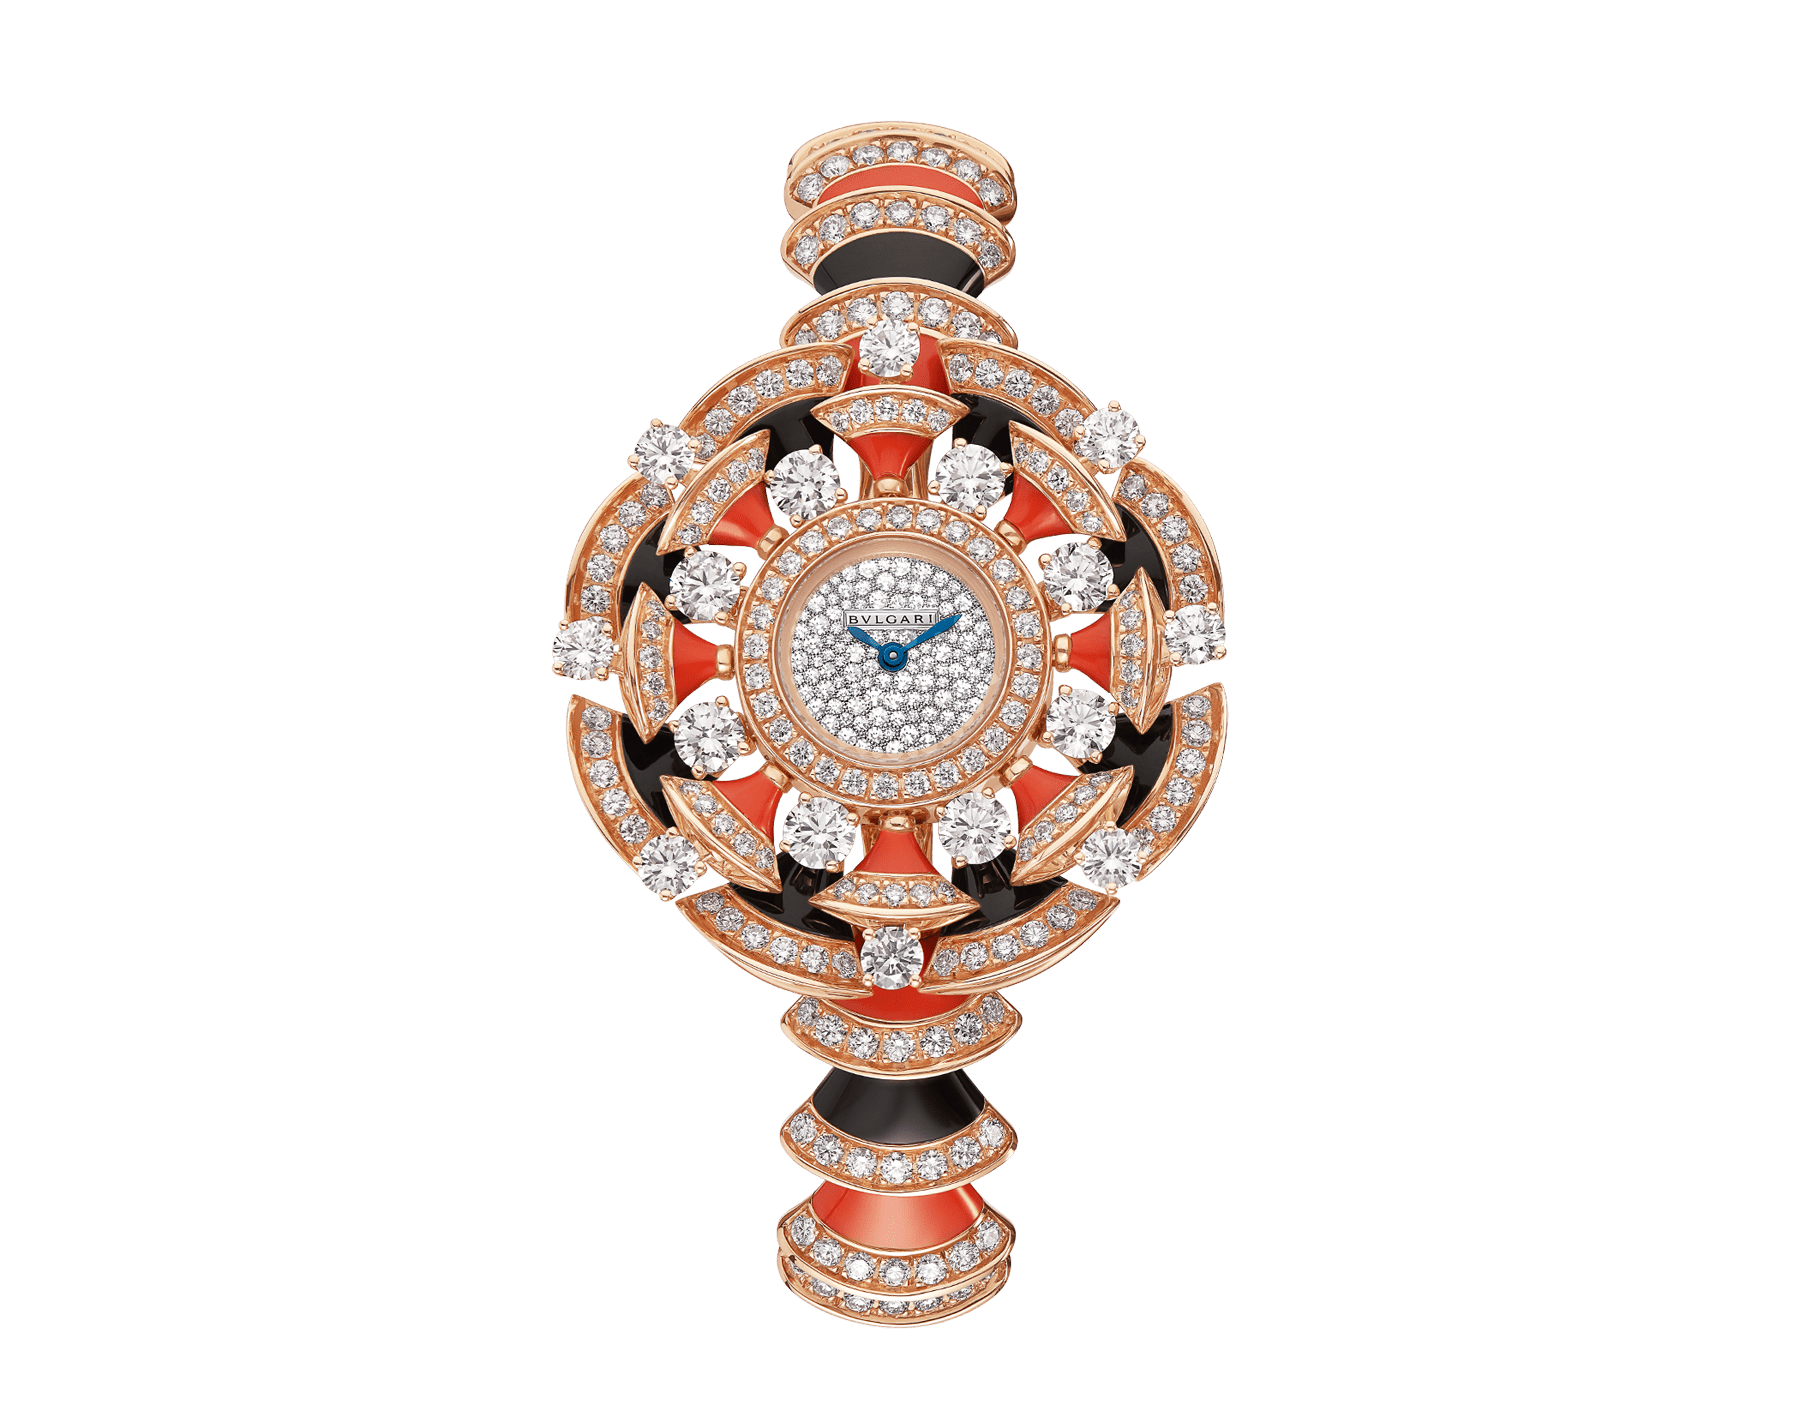 DIVAS' DREAM watch in 18 kt rose gold case and bracelet, both set with brilliant-cut diamonds, onyx and coral rubrum elements, with snow pavé dial 102422 image 1